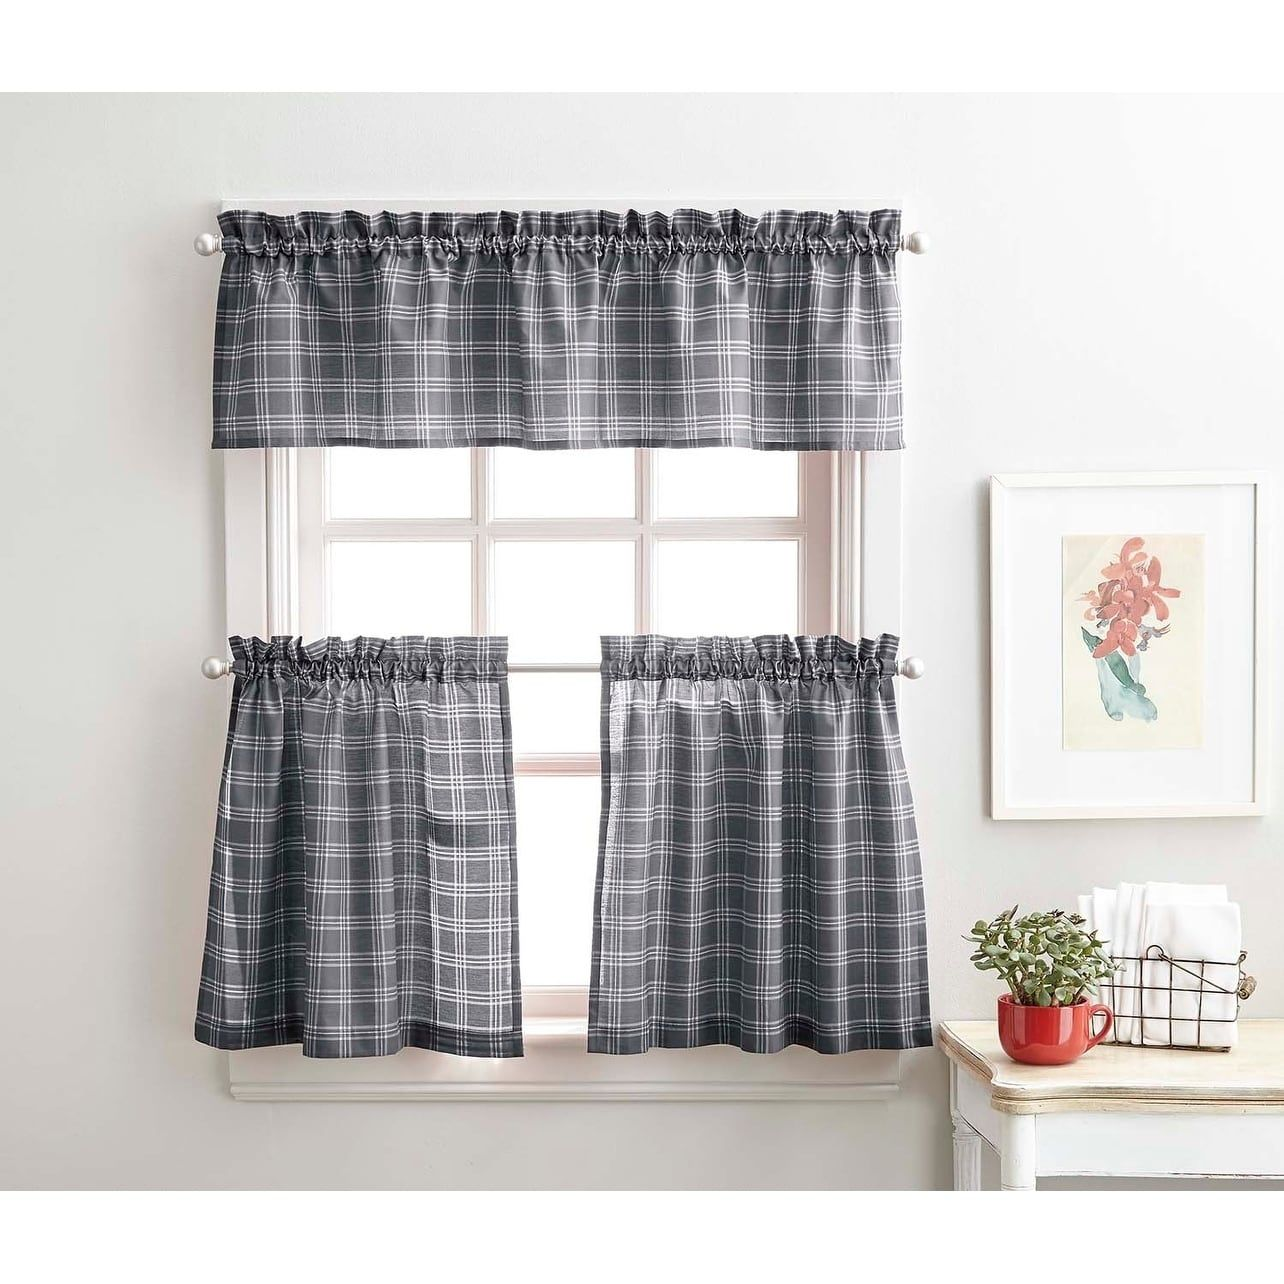 Lodge Plaid 3 Piece Kitchen Curtain Tier And Valance Set 36 3pc Set Grey Gray Polyester Blend In 2019 Grey Kitchen Curtains Kitchen Curtains Curtains